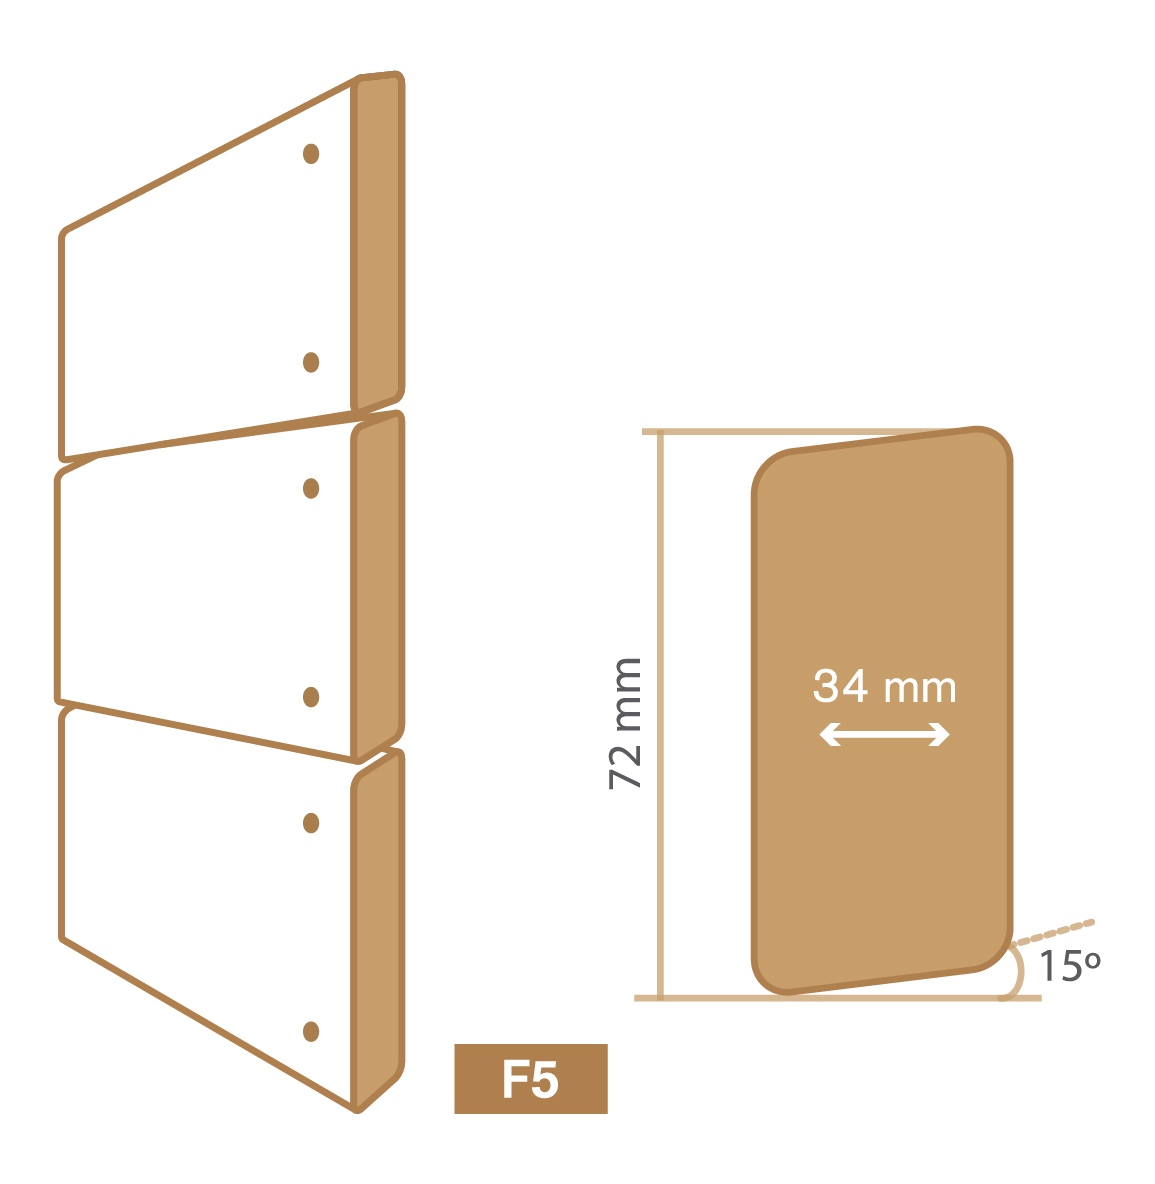 wooden cladding f5 type